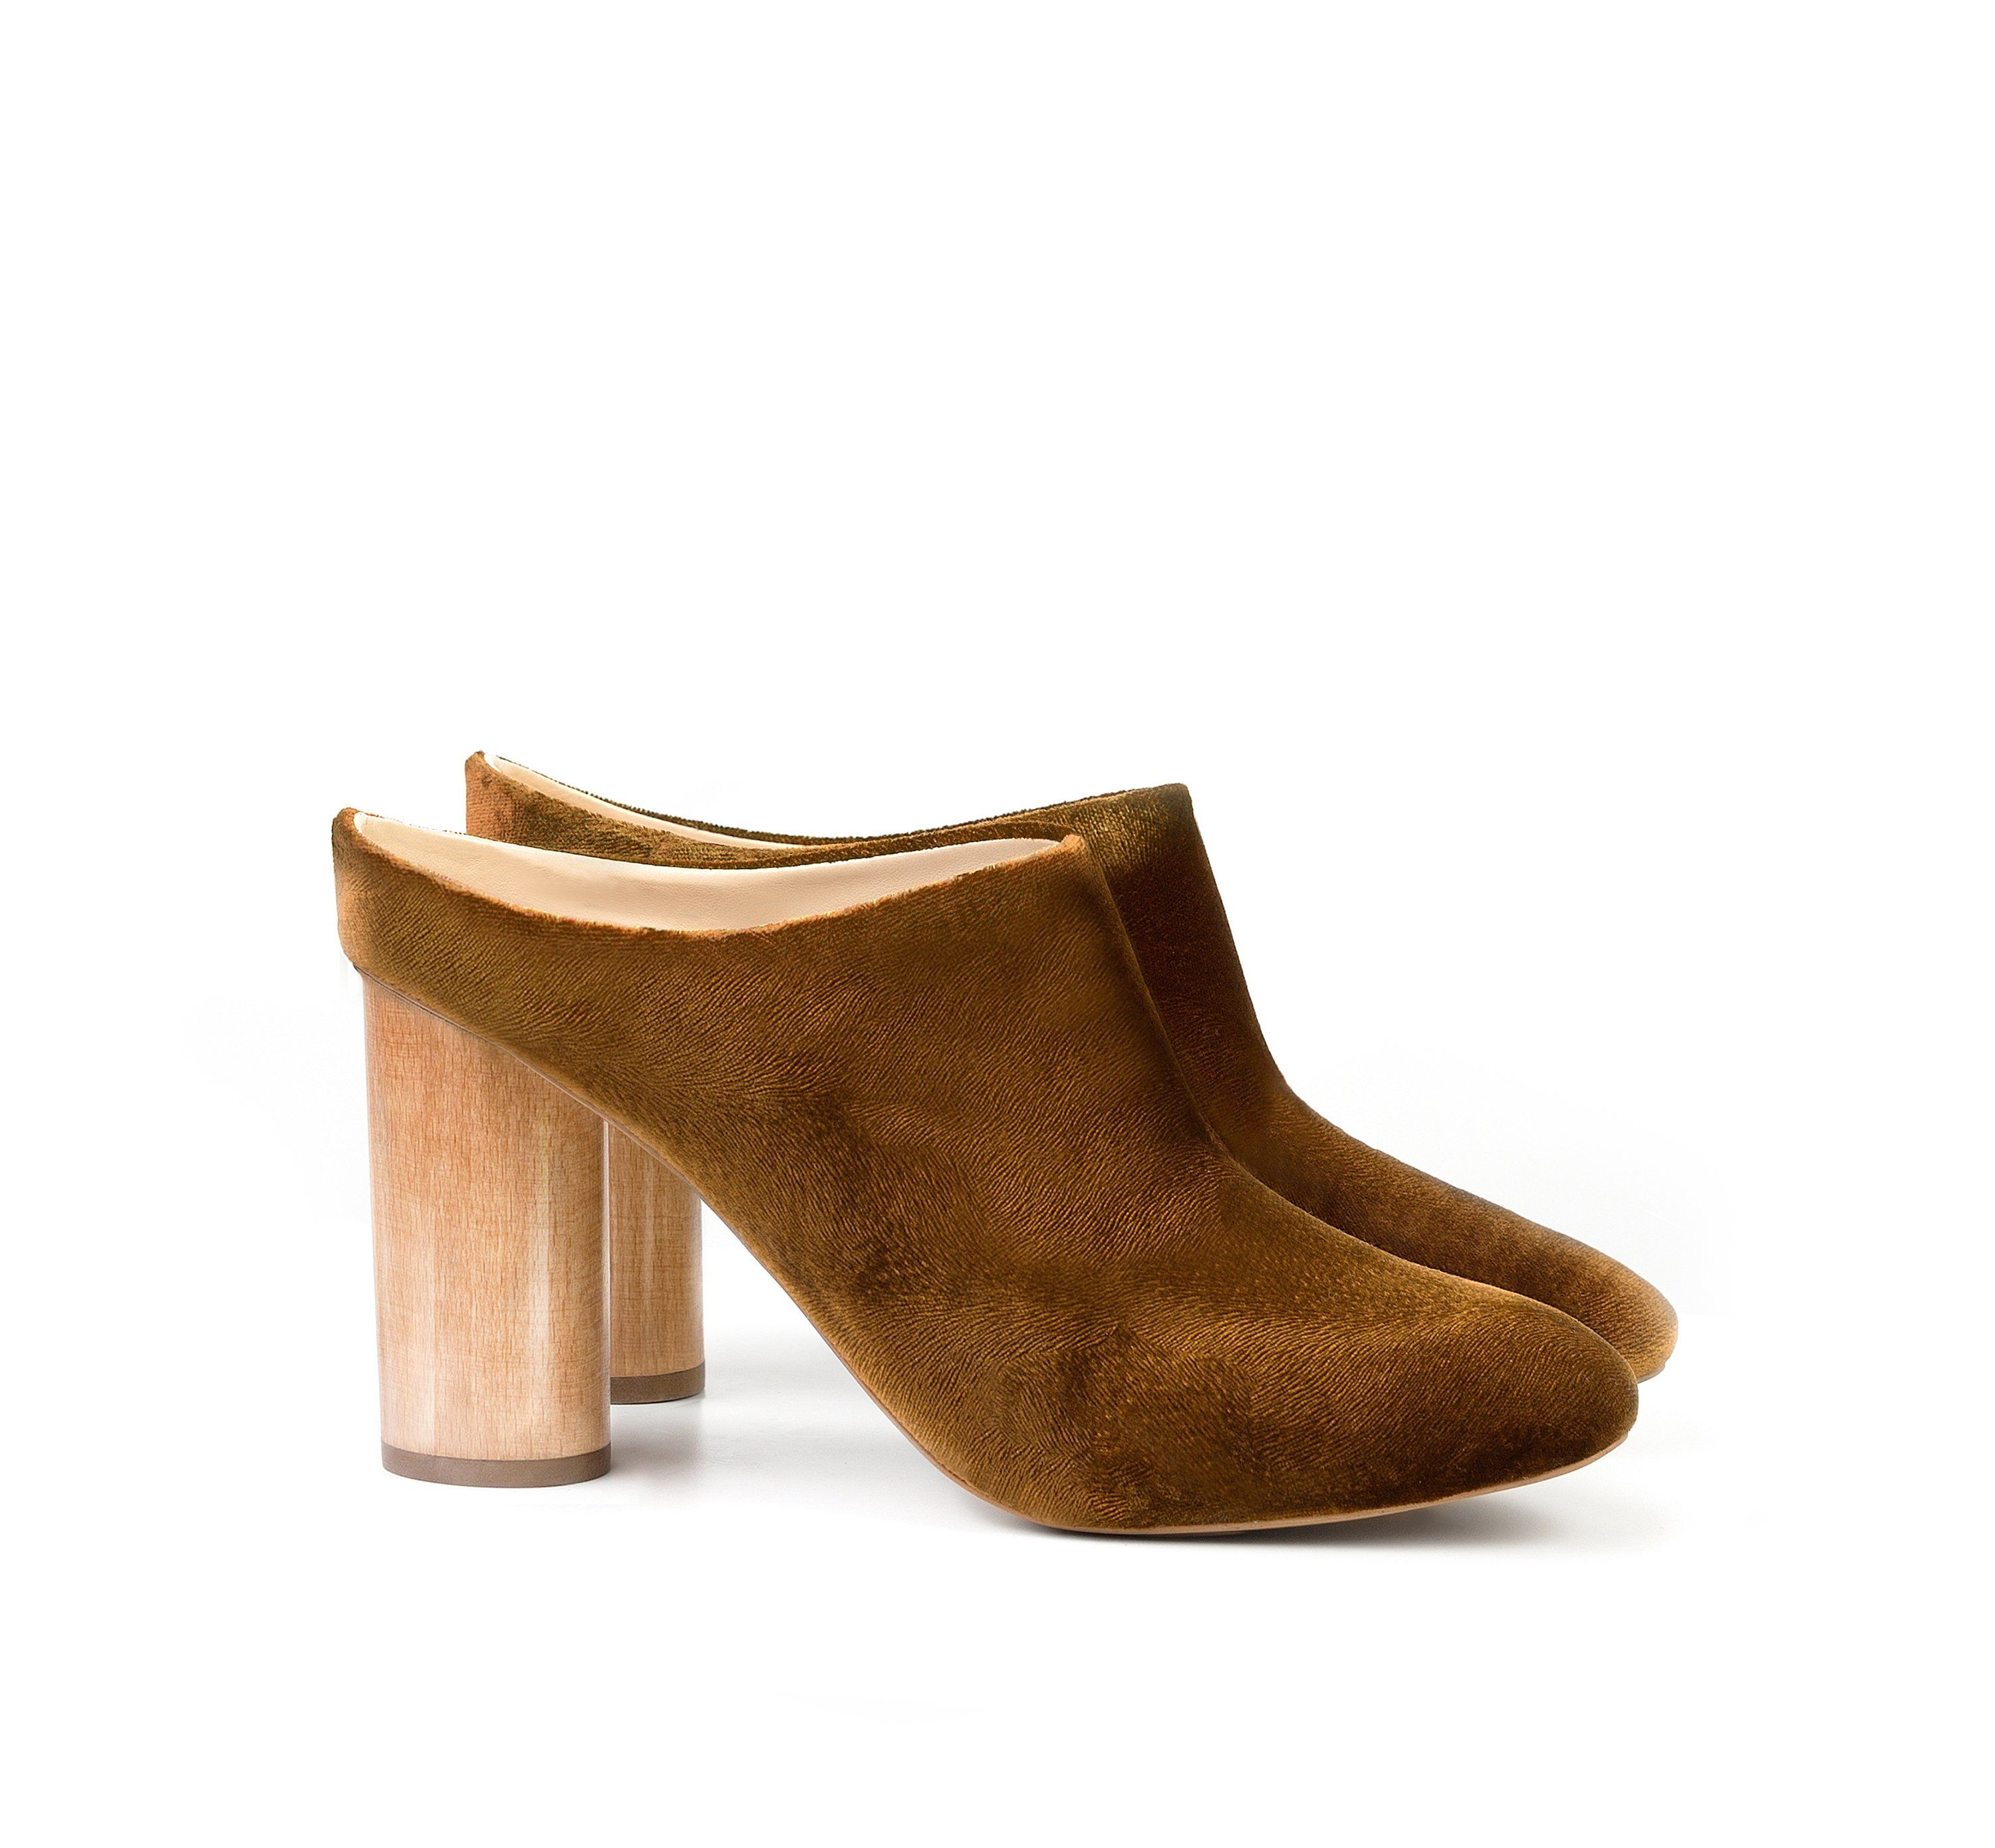 baa2c69249d5 High Mule in Amber Velvet. Sustainable Wood Heel. Luxury shoes. Ethical and  sustainable footwear by Sydney Brown.